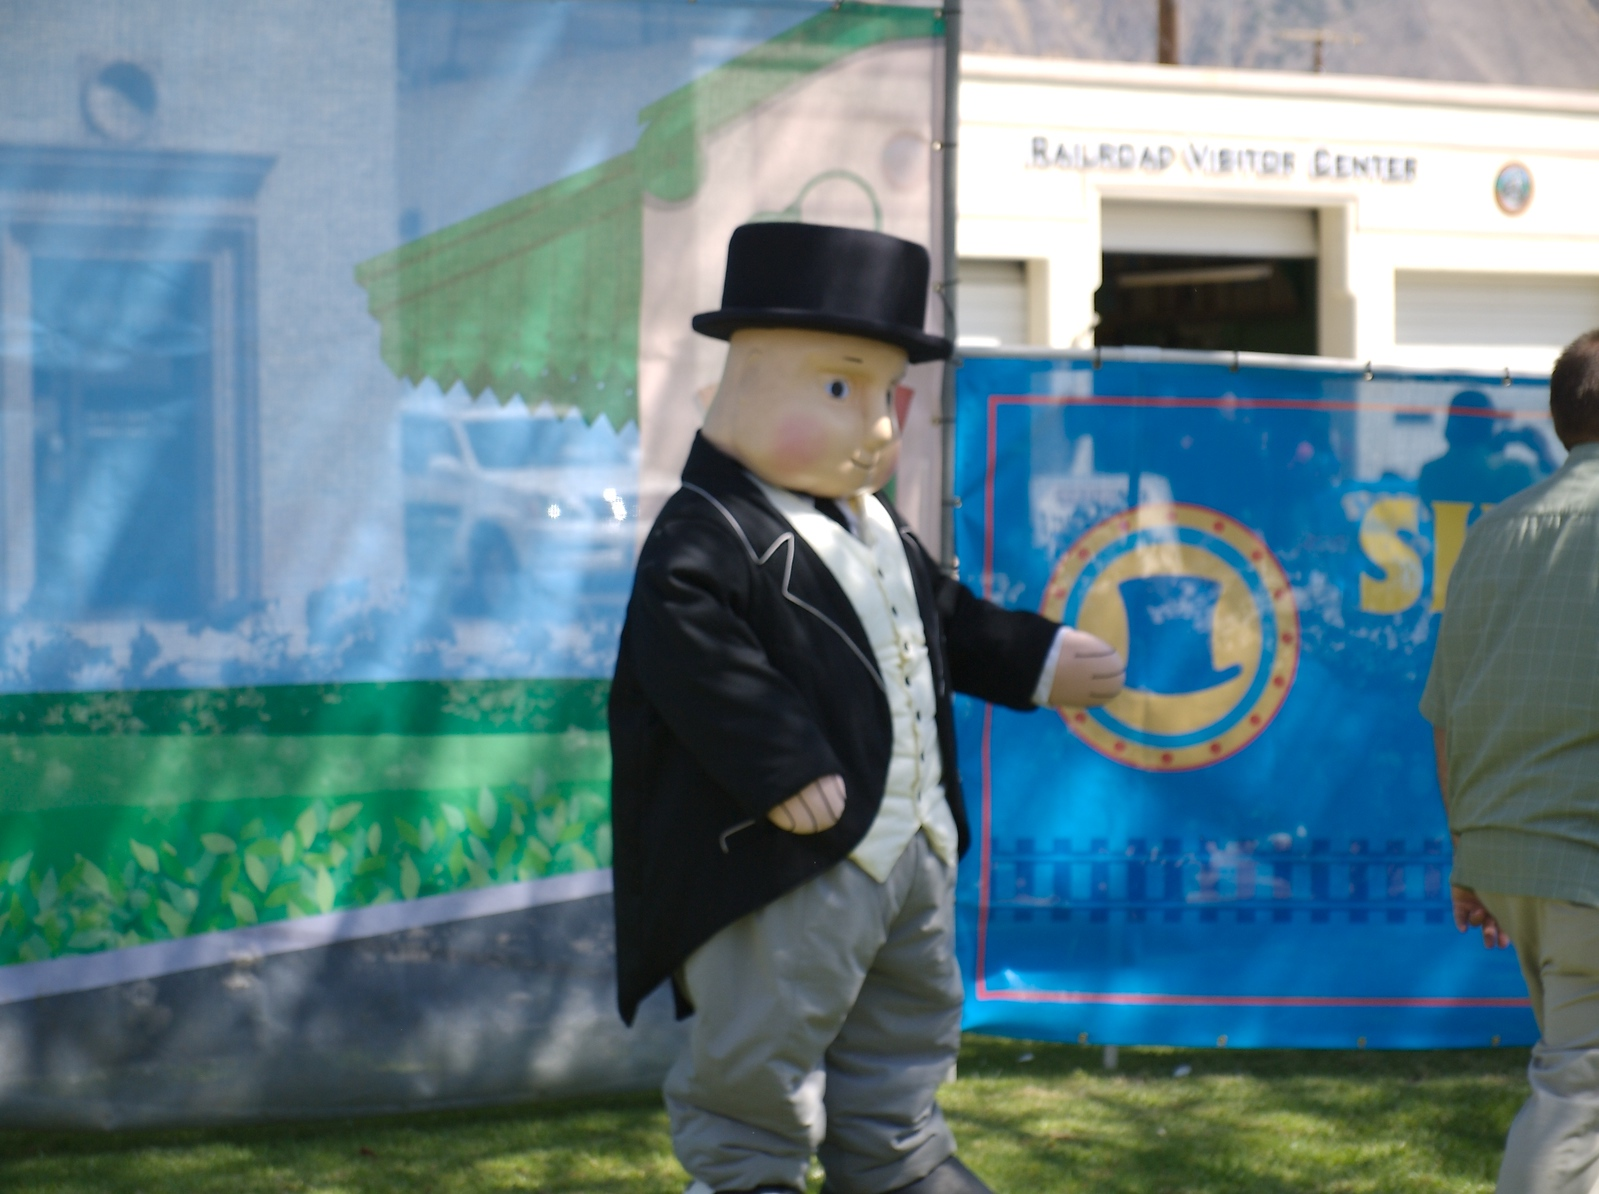 Here is Sir Topham Hatt from Thomas the Train. 4/21